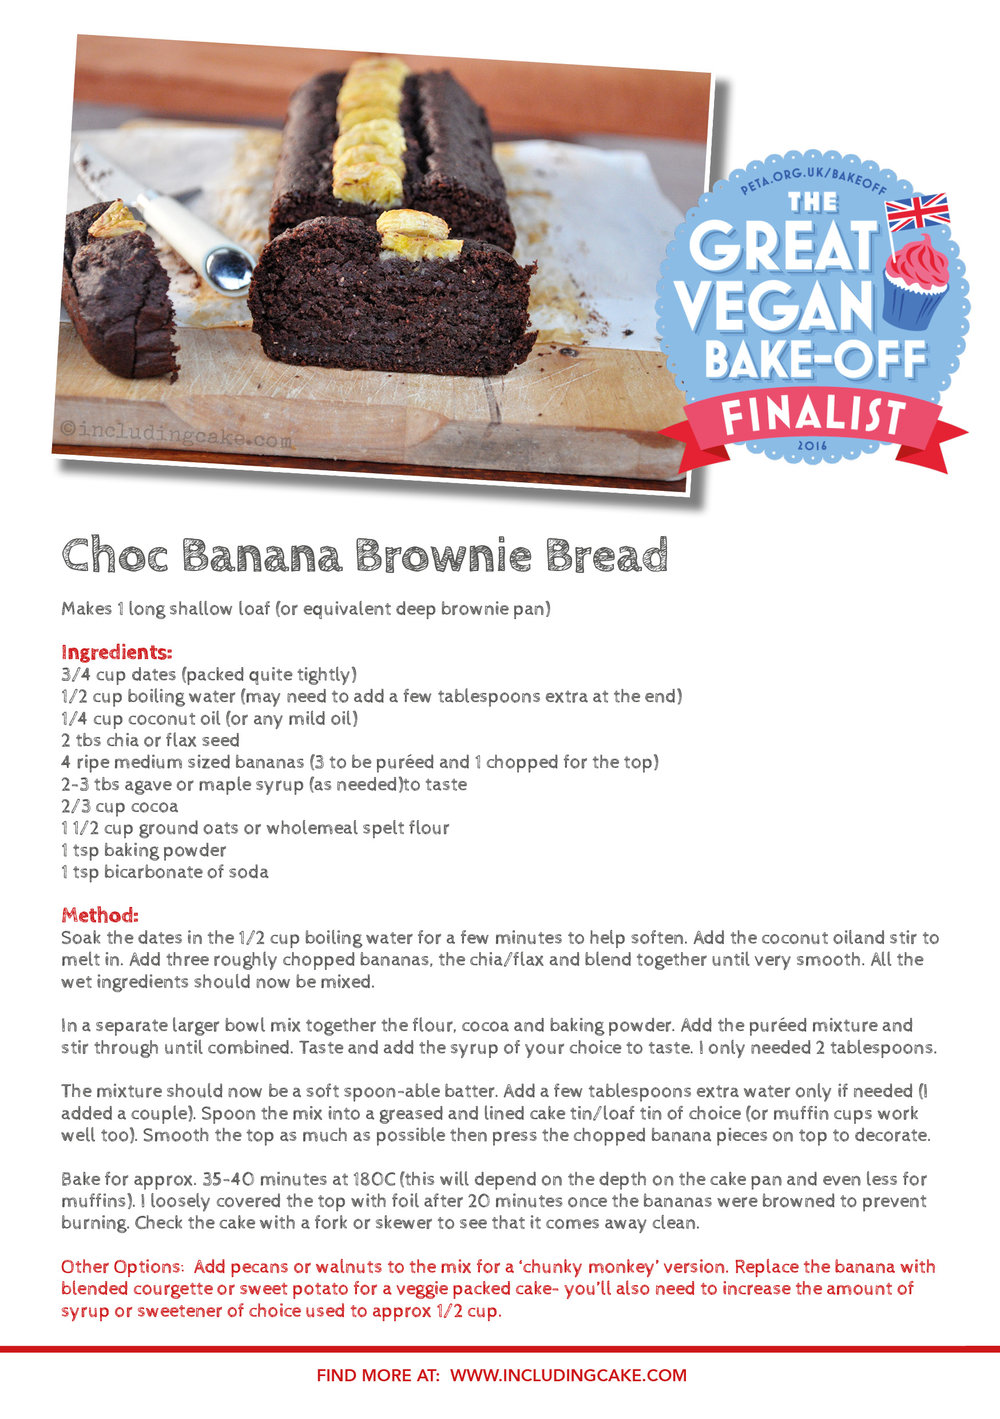 choc banana brownie bread recipe card.jpg